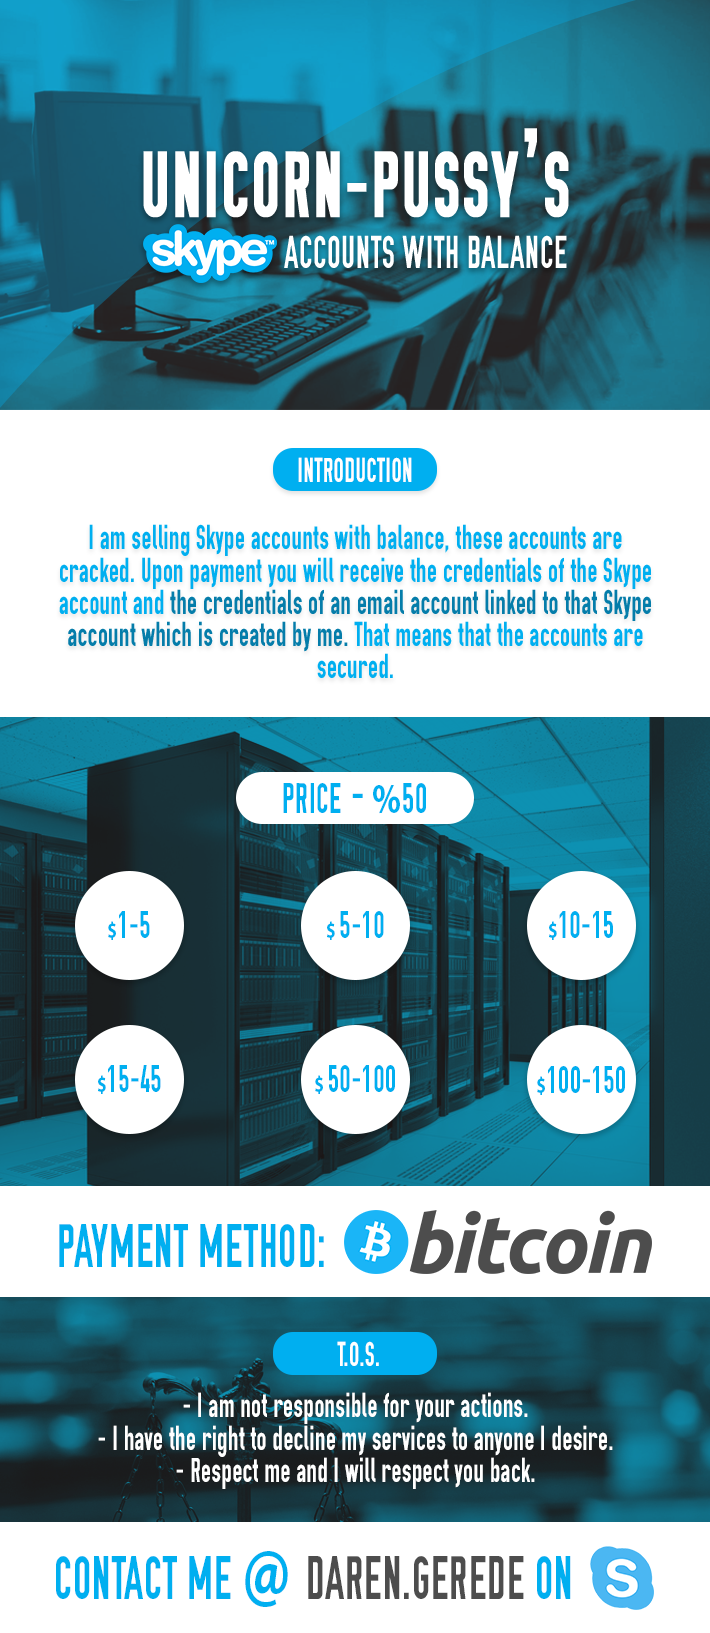 Skype login account - These Accounts Are Cracked And Secured With A Private Method A Custom Email Account Is Created And Linked To The Skype Account So The Account Is Secure